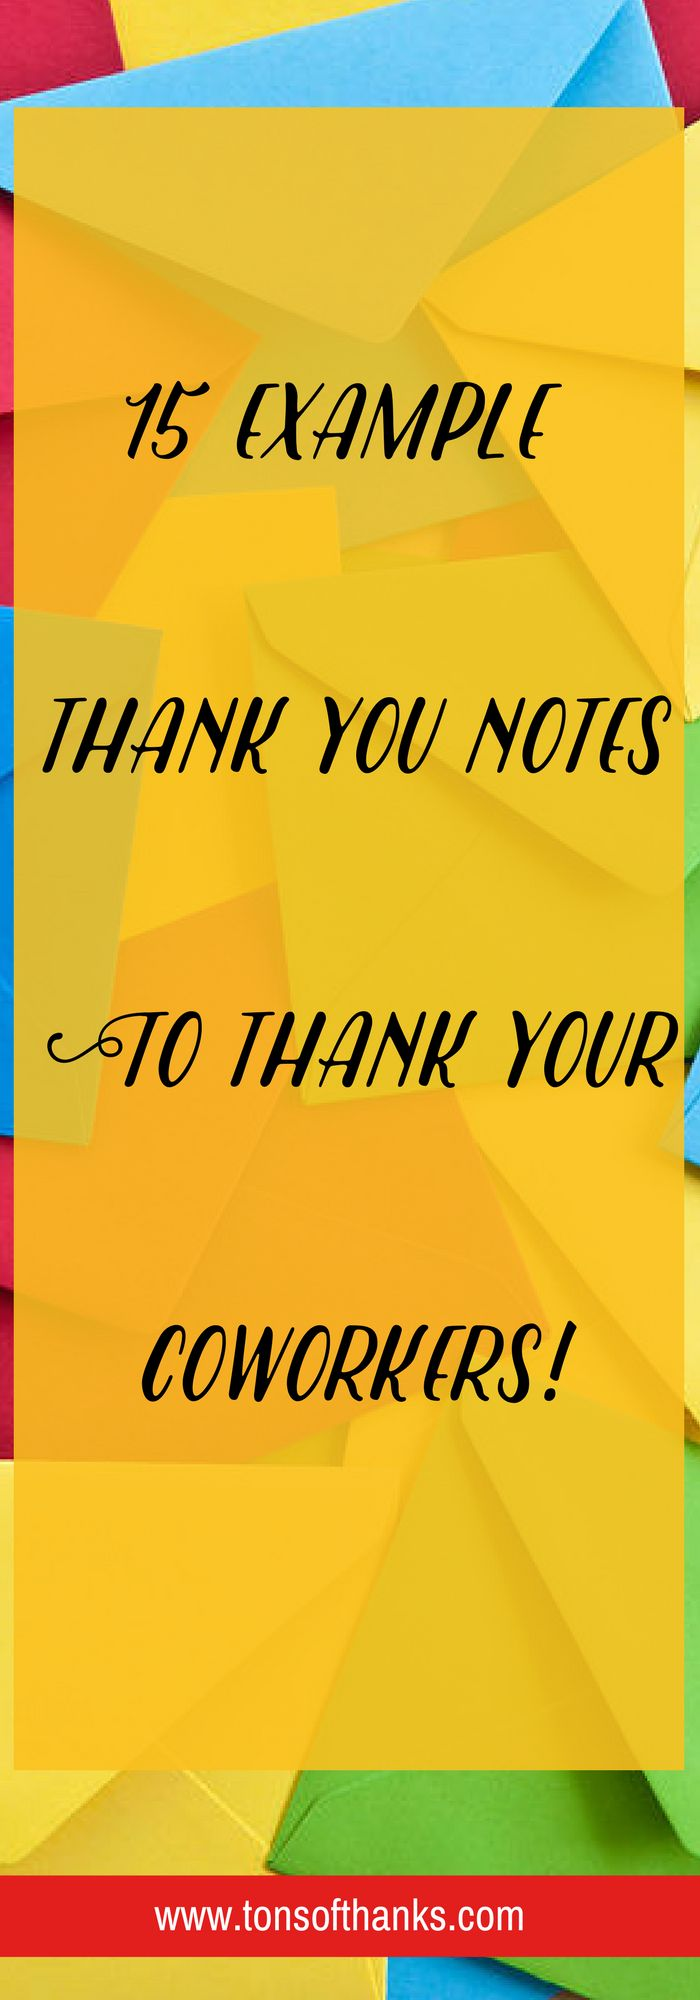 17 Best images about Thank you Note Examples on Pinterest ...